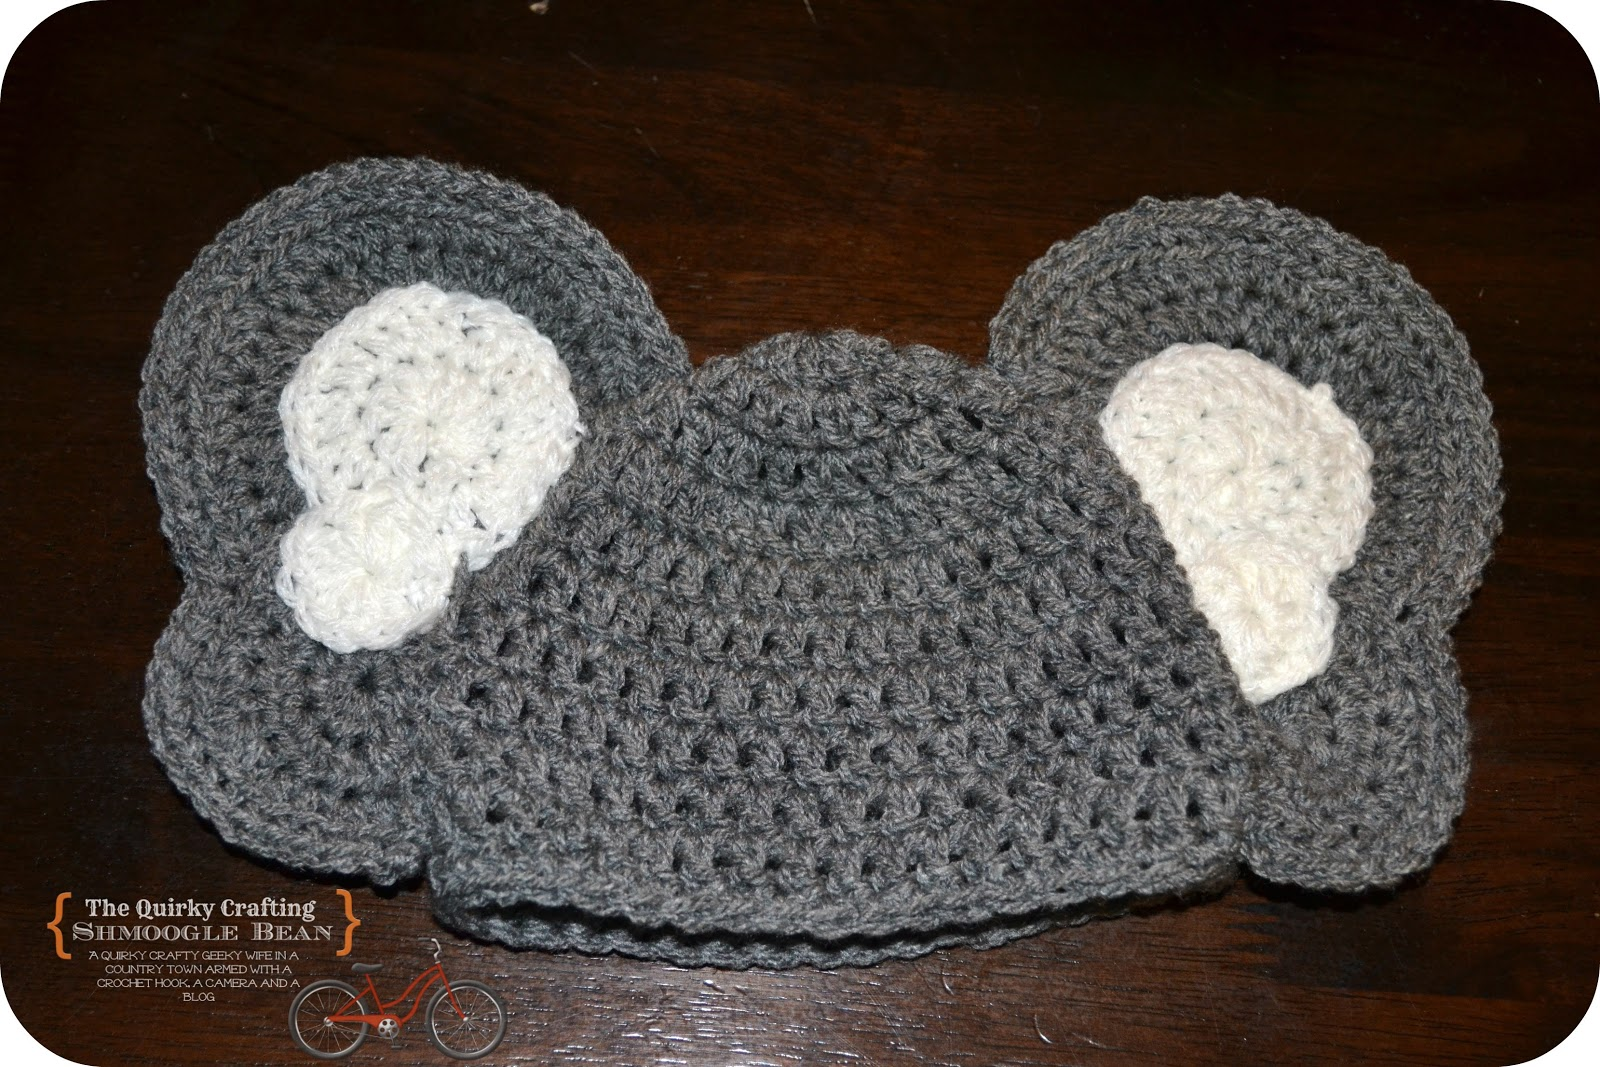 Crochet Pattern For Baby Elephant Hat : The Quirky Crafting Shmoogle Bean: Newborn Baby Heffalump ...